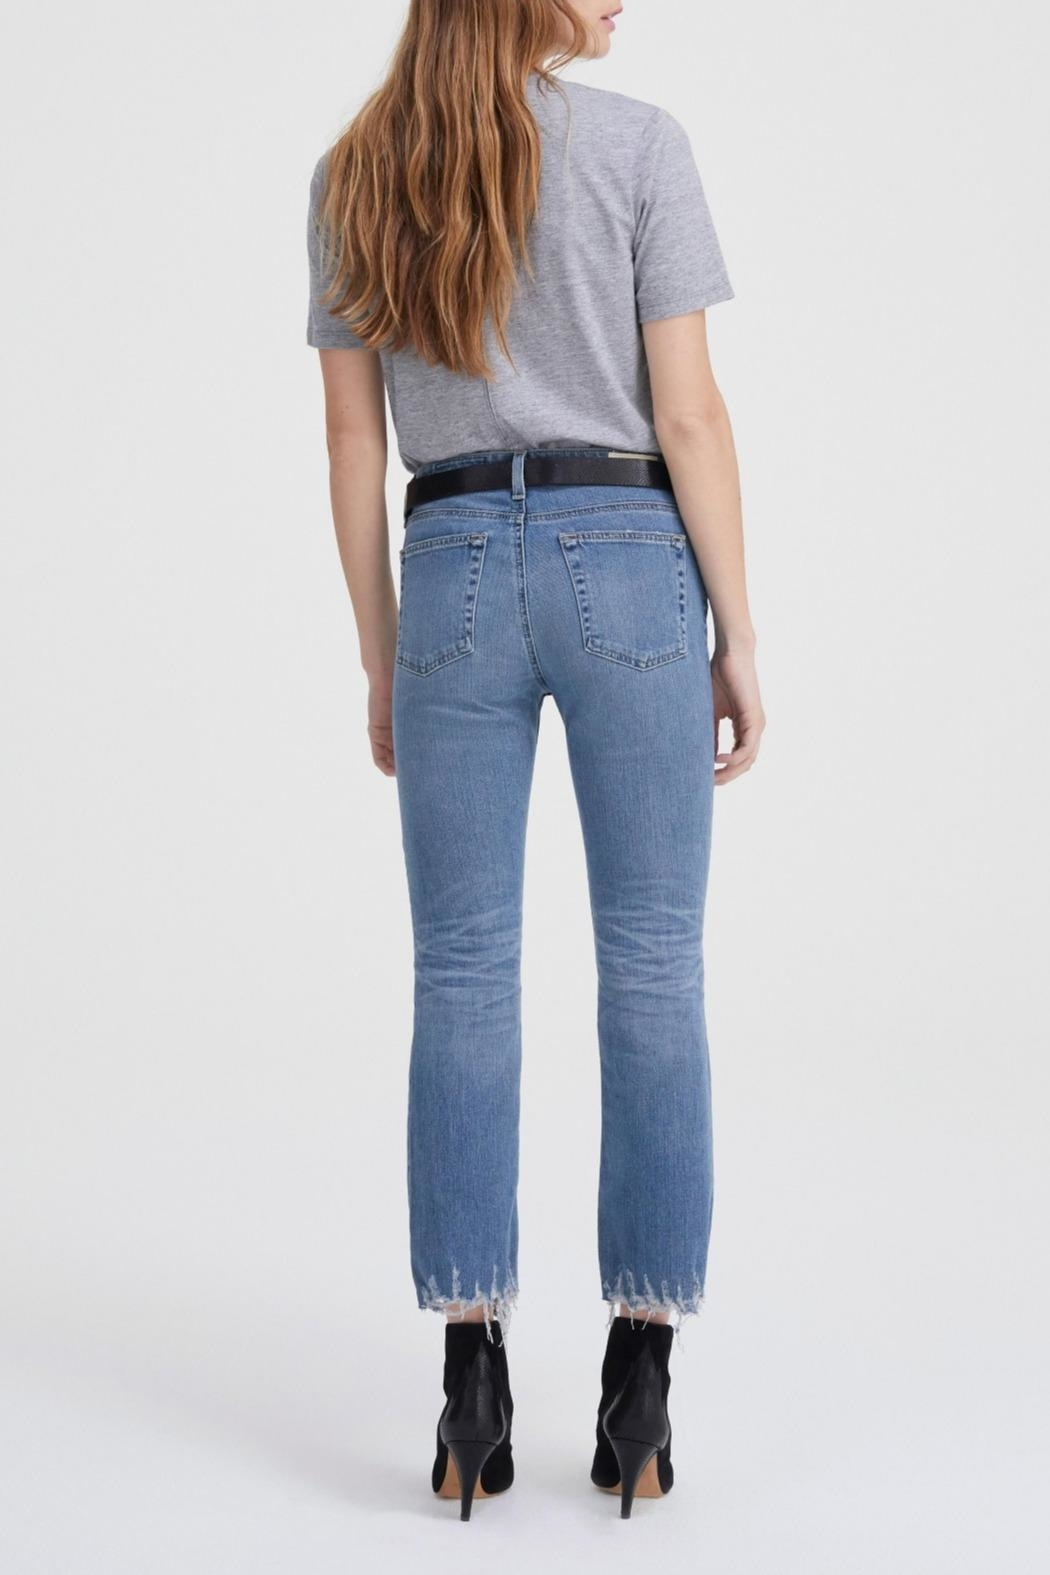 AG Jeans The Jodi Crop - Back Cropped Image